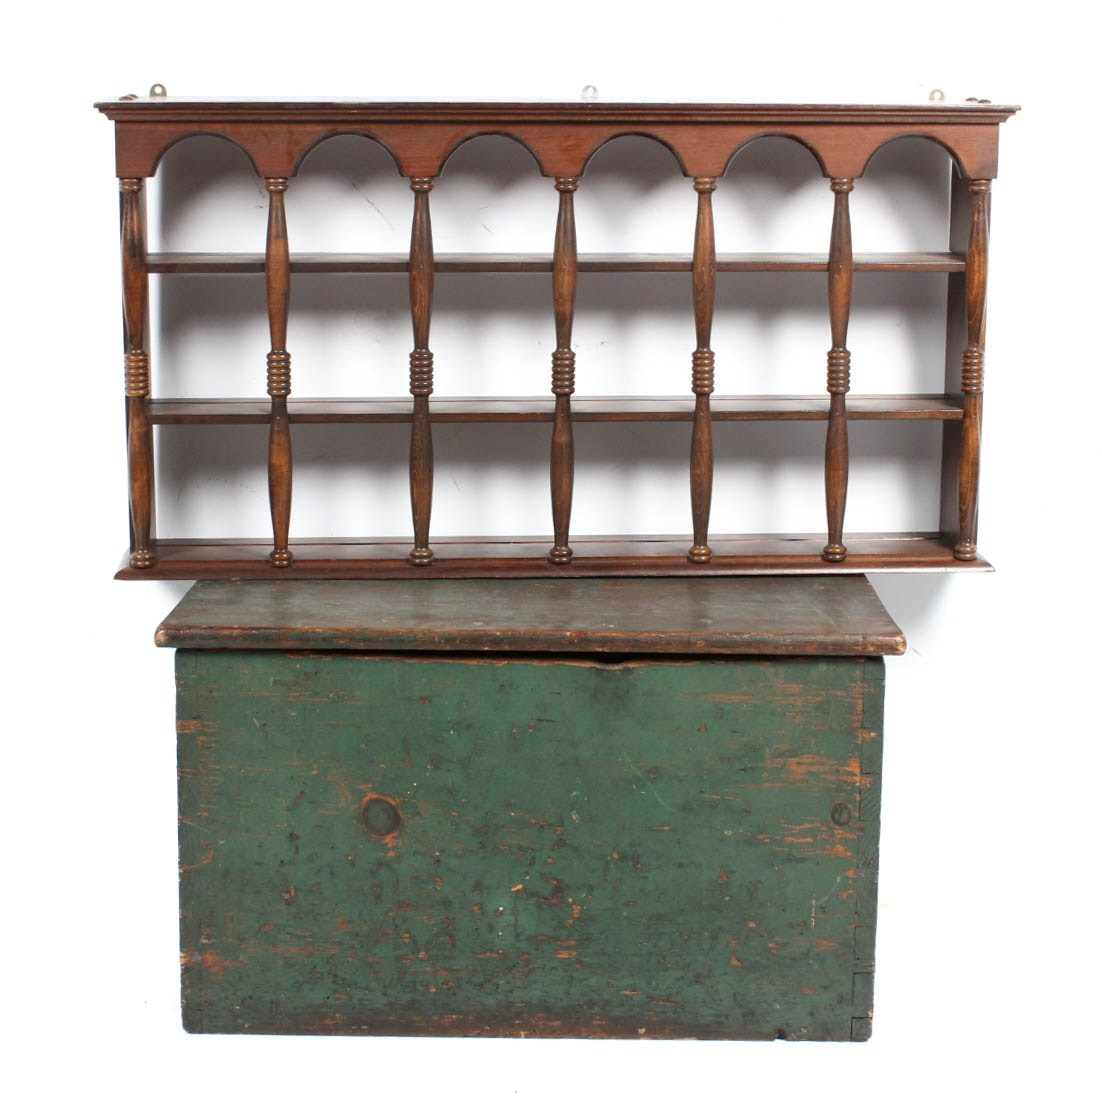 Primitive Painted Pine Chest and Cornwall Display Shelf